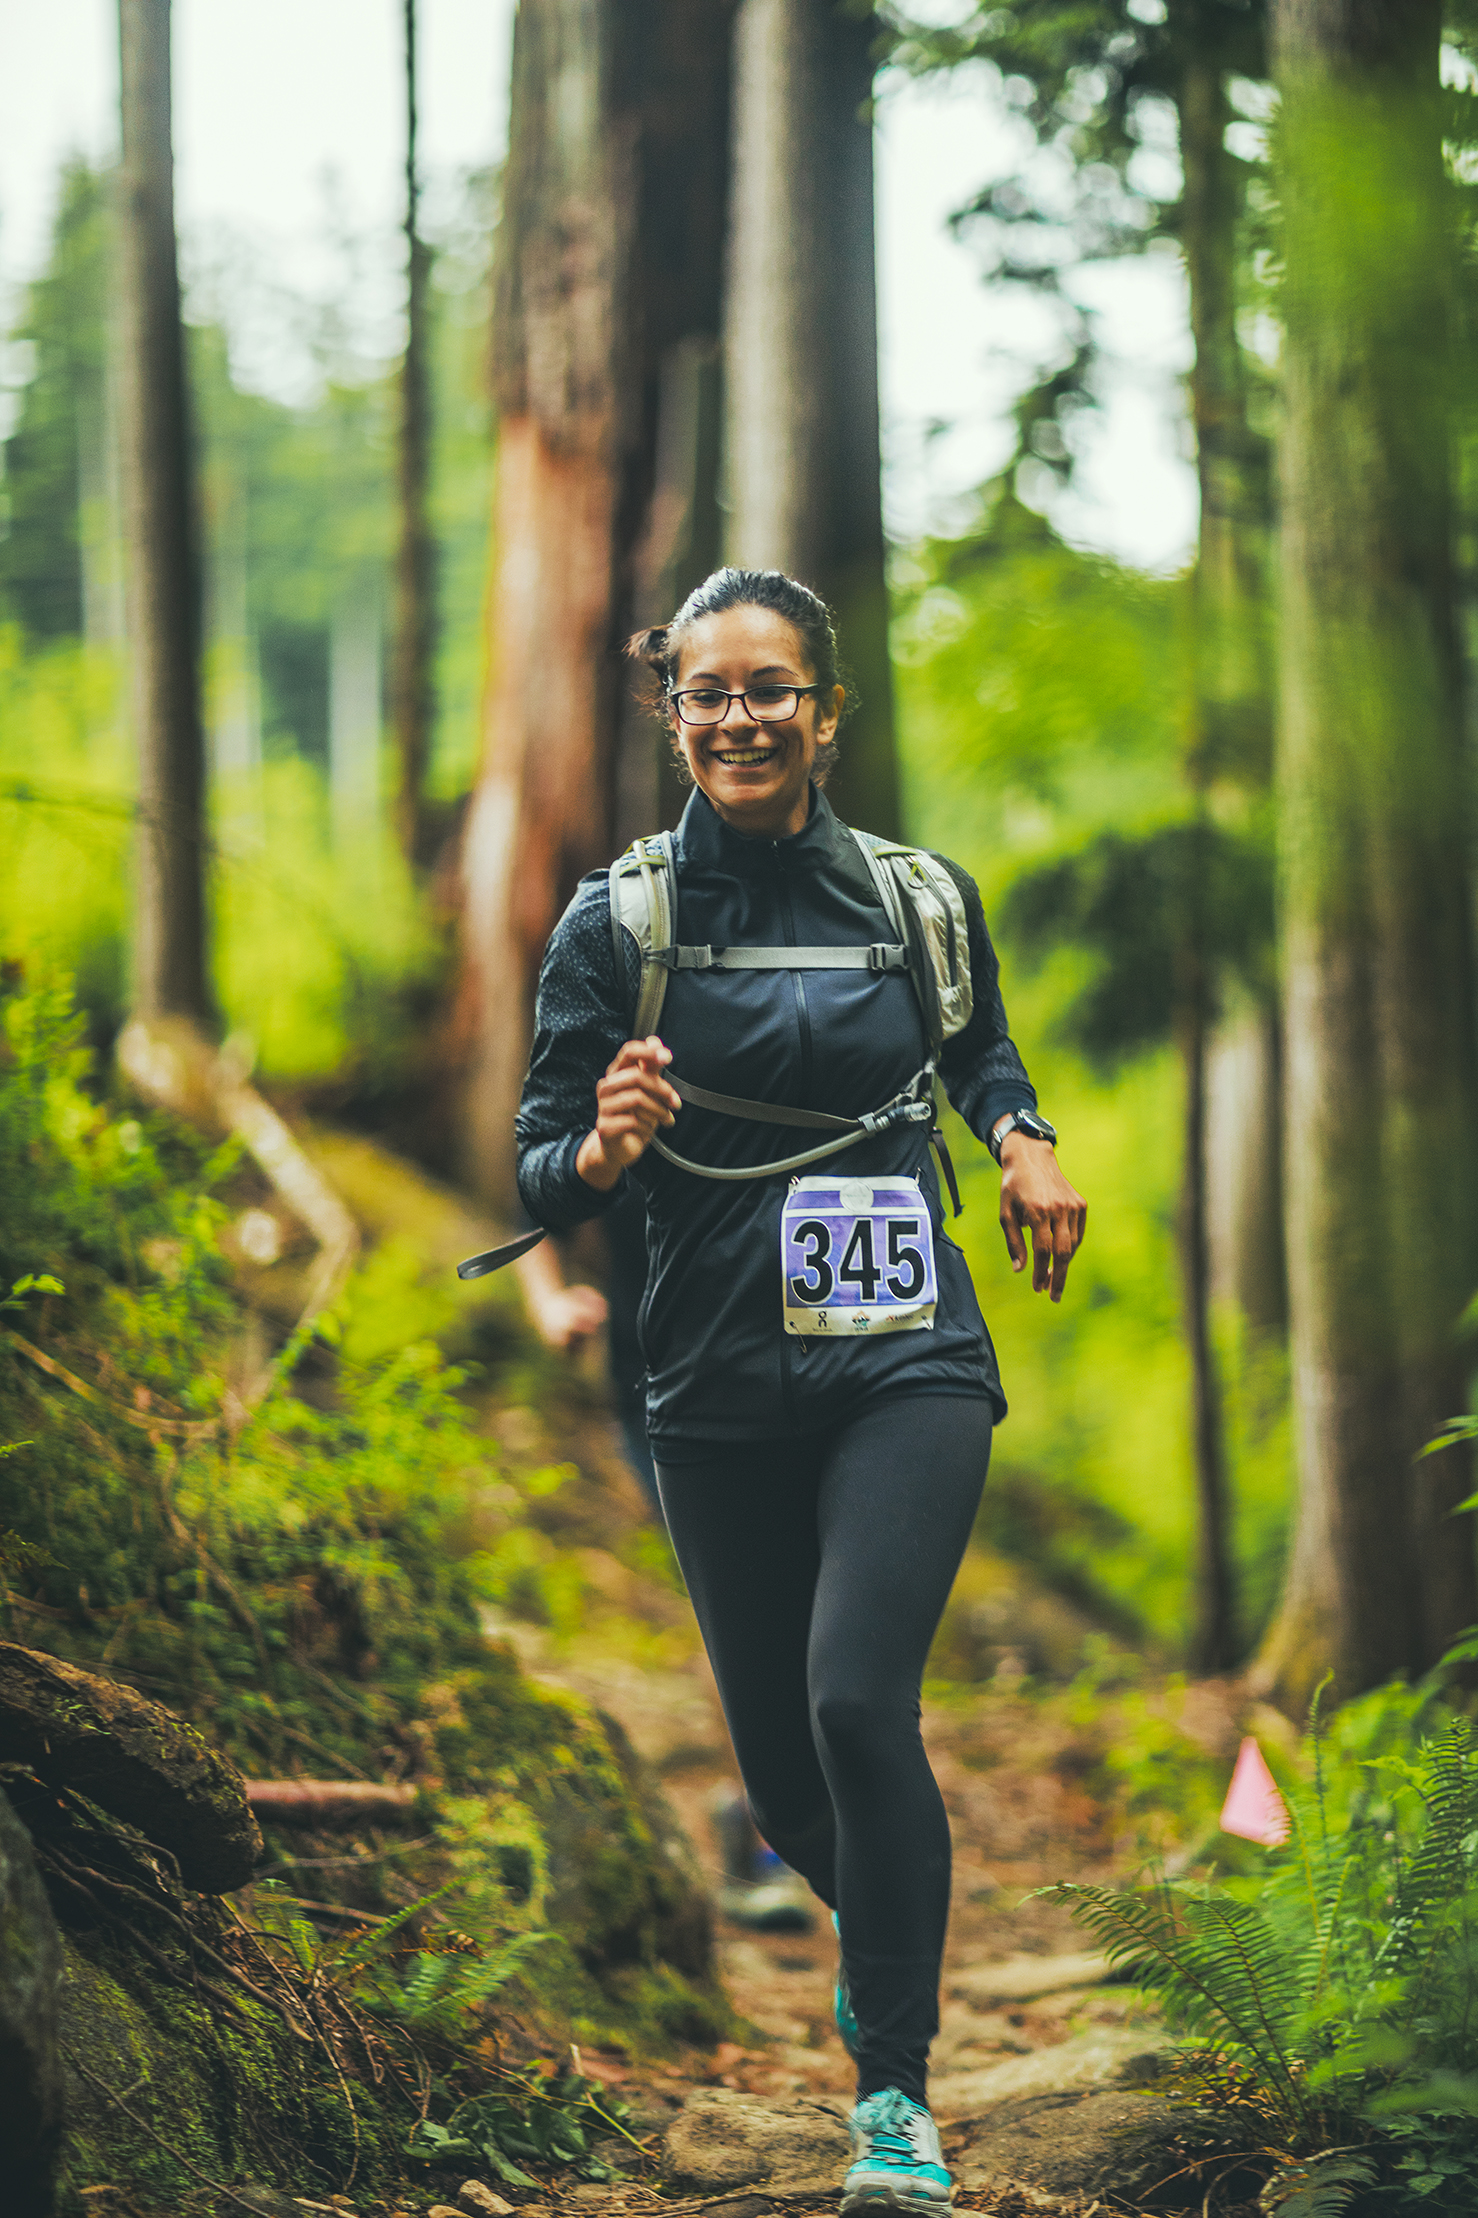 Fraser Valley Trail Races - Bear Mountain - IMG_1567 by Brice Ferre Studio - Vancouver Portrait Adventure and Athlete Photographer.jpg